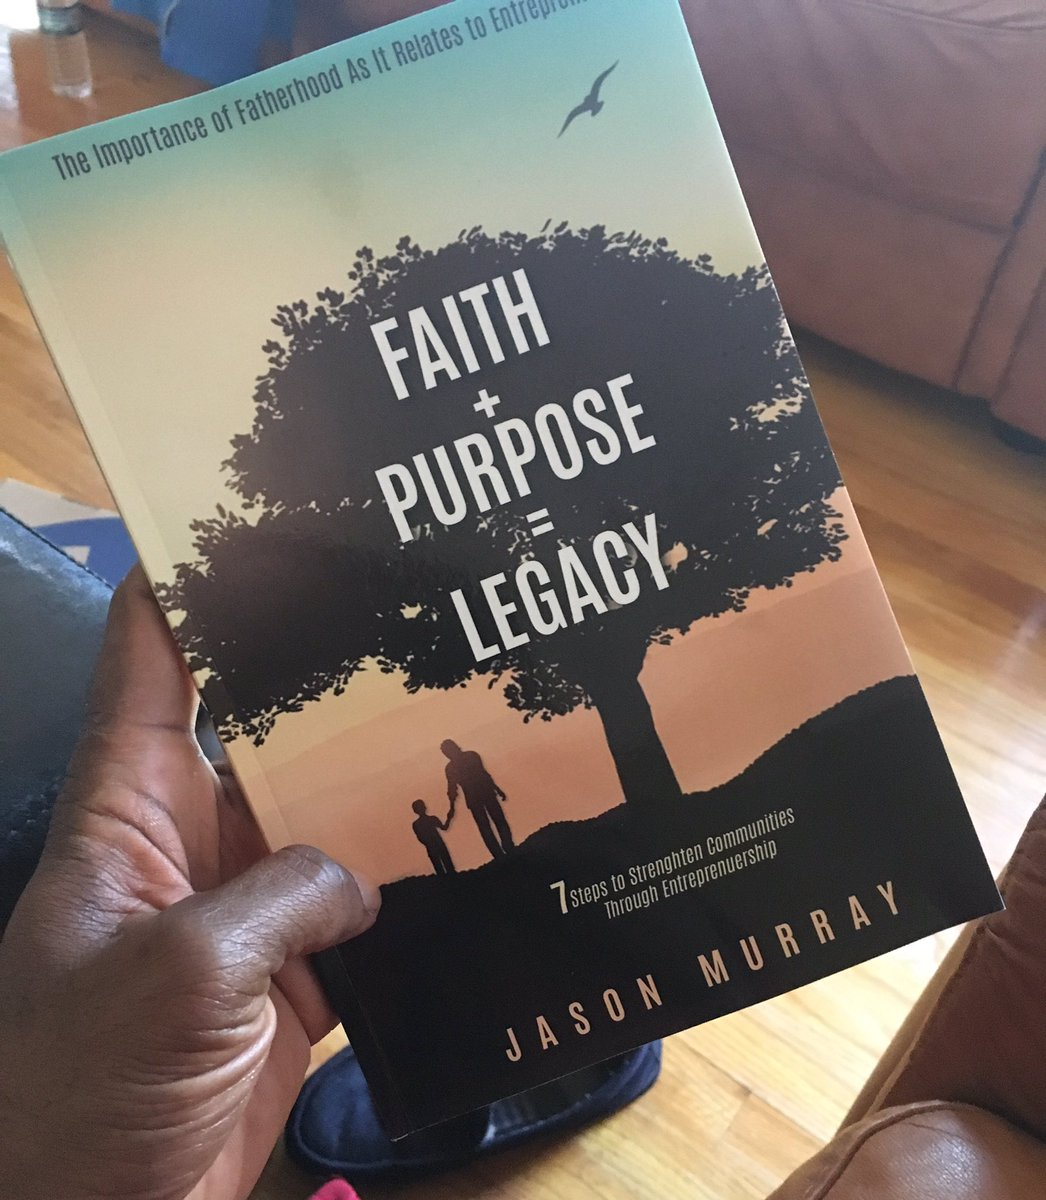 #NowReading #Faith + #Purpose = #Legacy: 7 Steps to Strengthen Communities Through #Entrepreneurship by @JasonMurrayCEO. #books #bookstagram #leadersarereaders #books #TheSuccesspert<br>http://pic.twitter.com/6kX8q78fHu